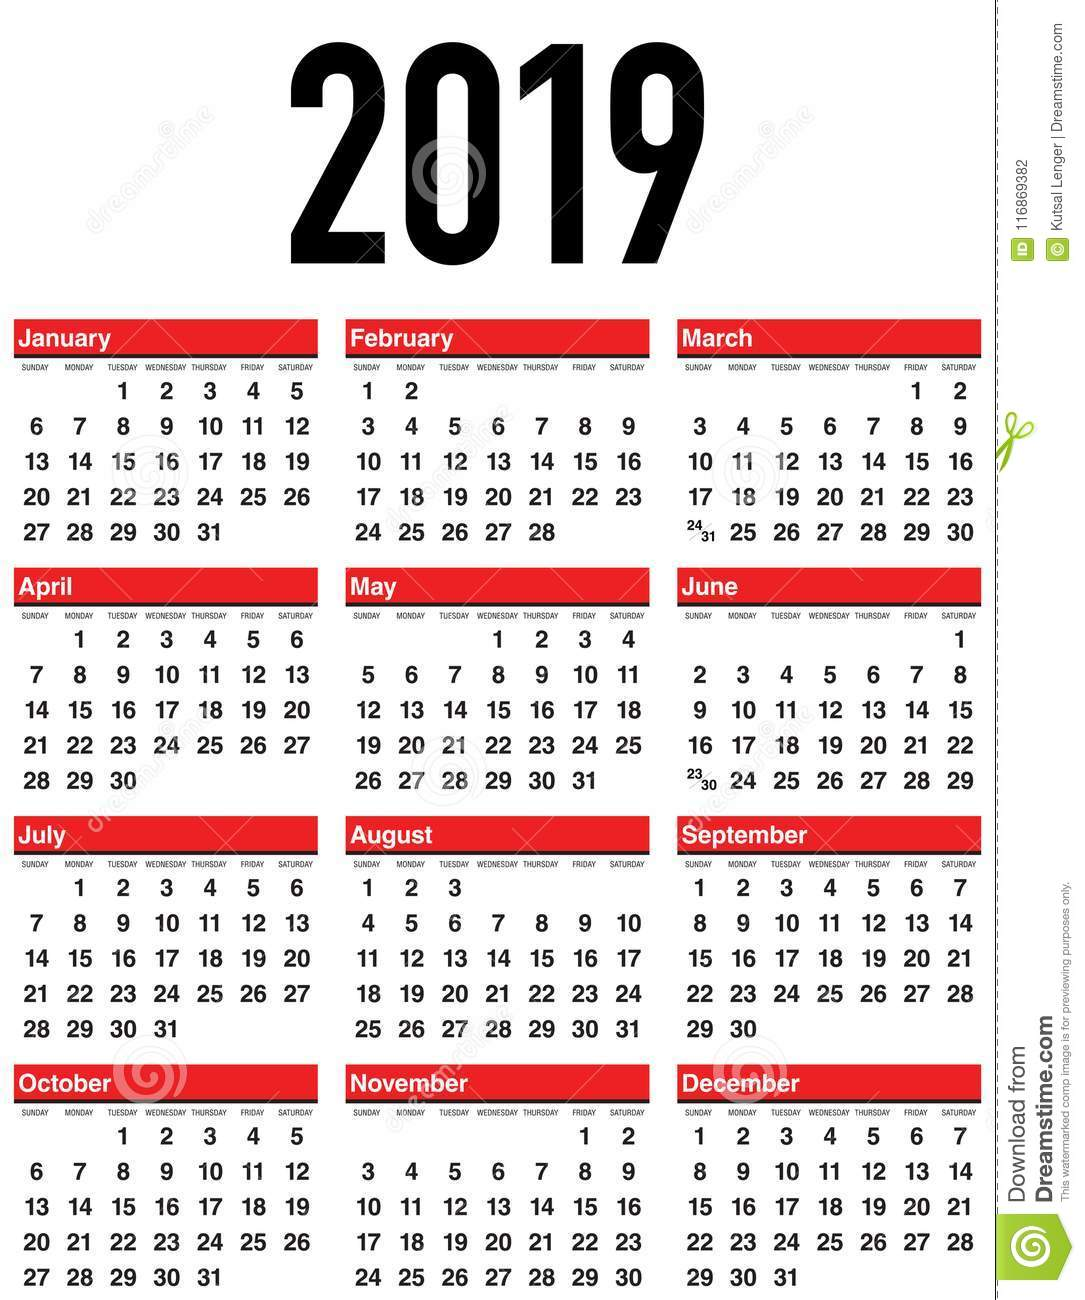 Calendario 2019 Por Semanas.Calendario 2019 Del Vector La Semana Empieza De Domingo